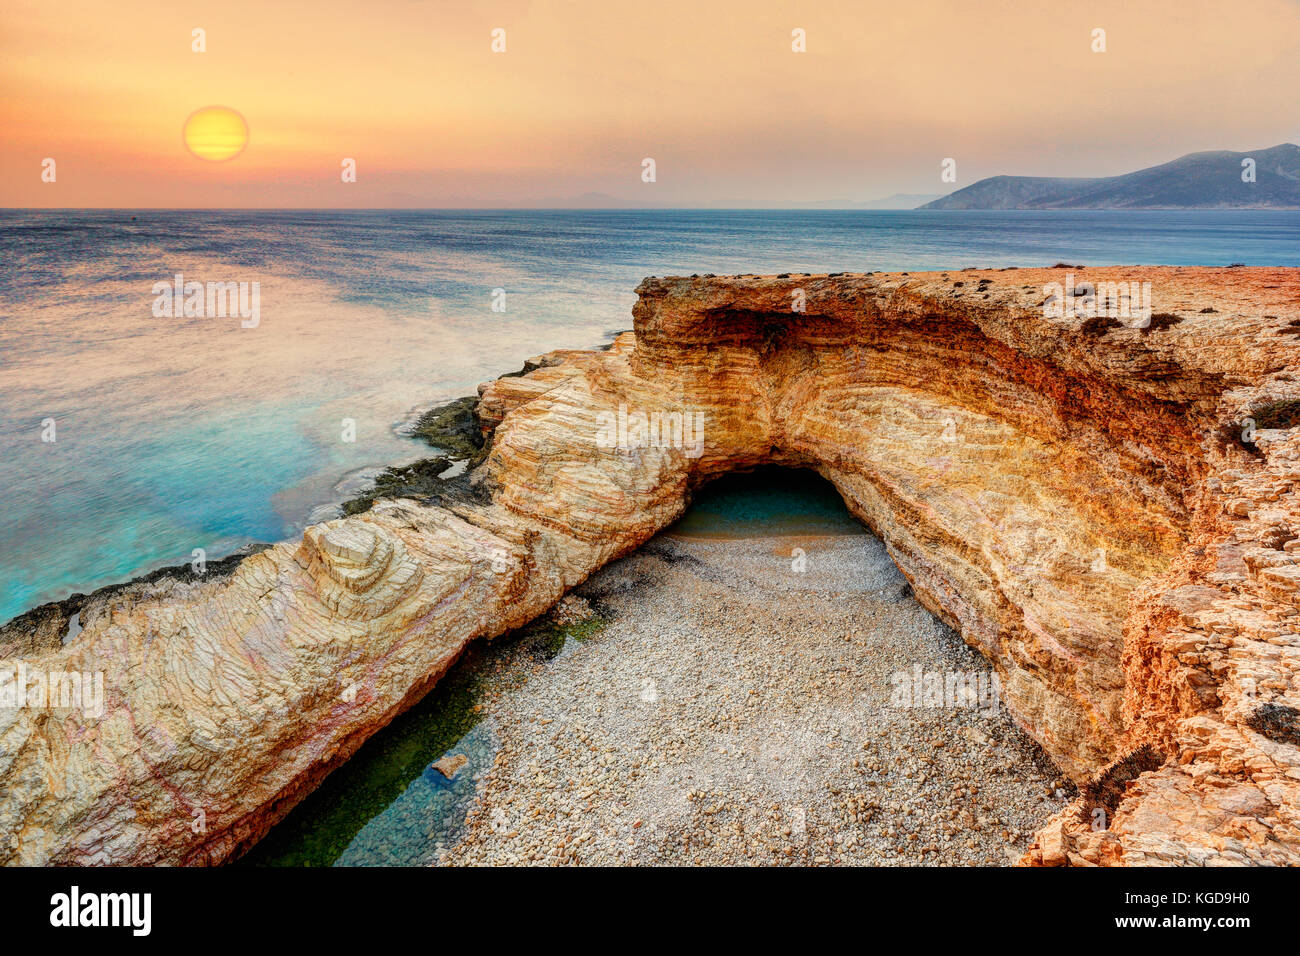 The sunrise at the famous Gala of Koufonissi island in Cyclades, Greece - Stock Image